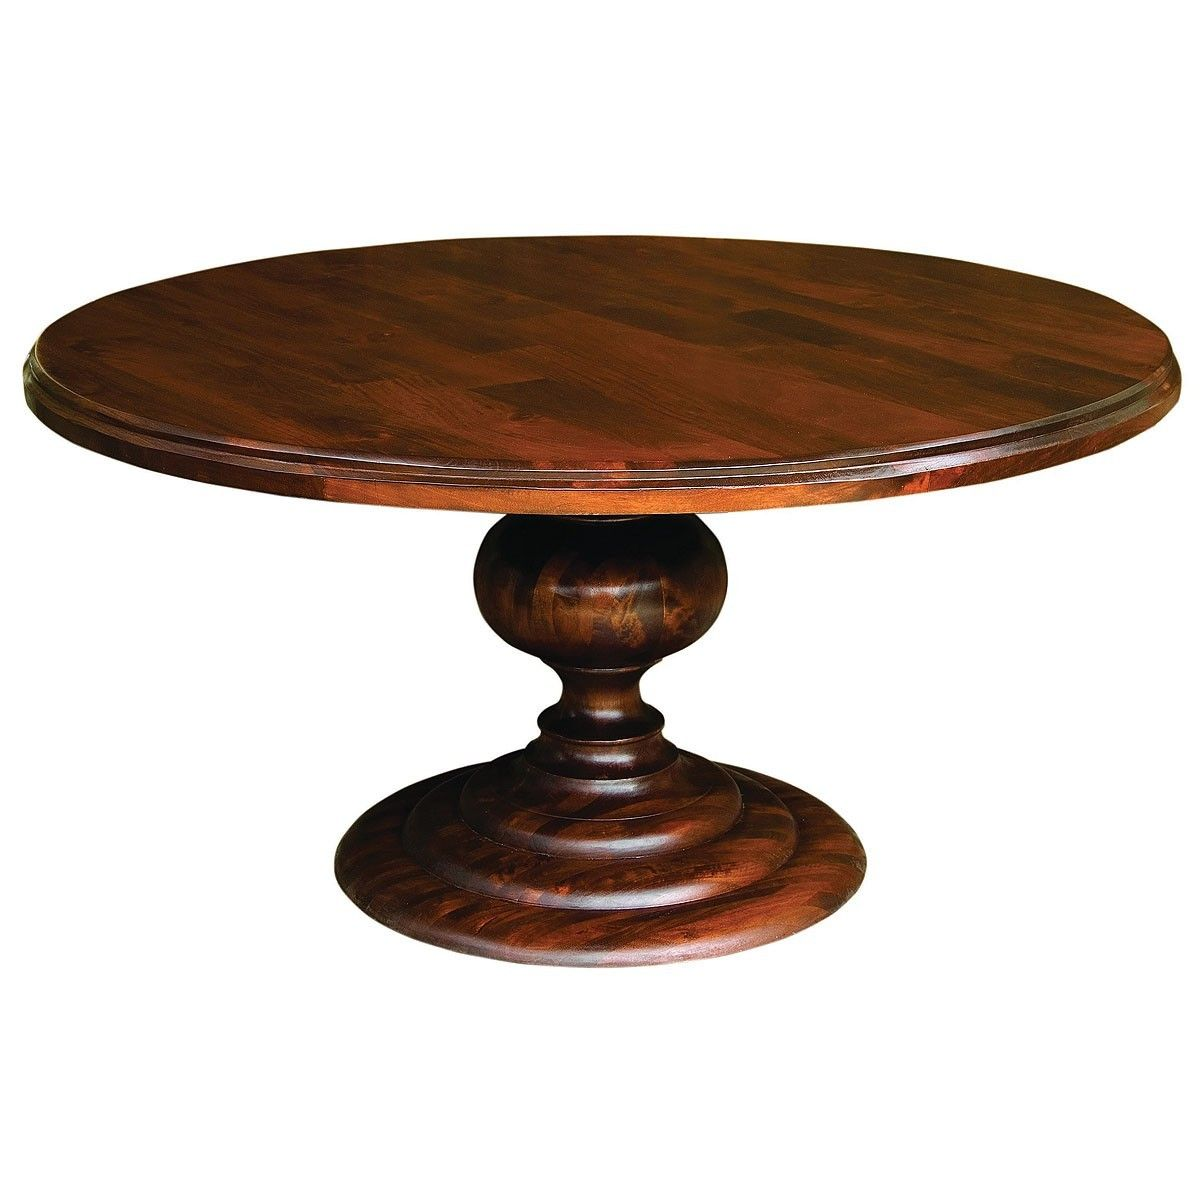 60 round pedestal dining table cocoa round pedestal dining table 60 round pedestal dining table cocoa workwithnaturefo